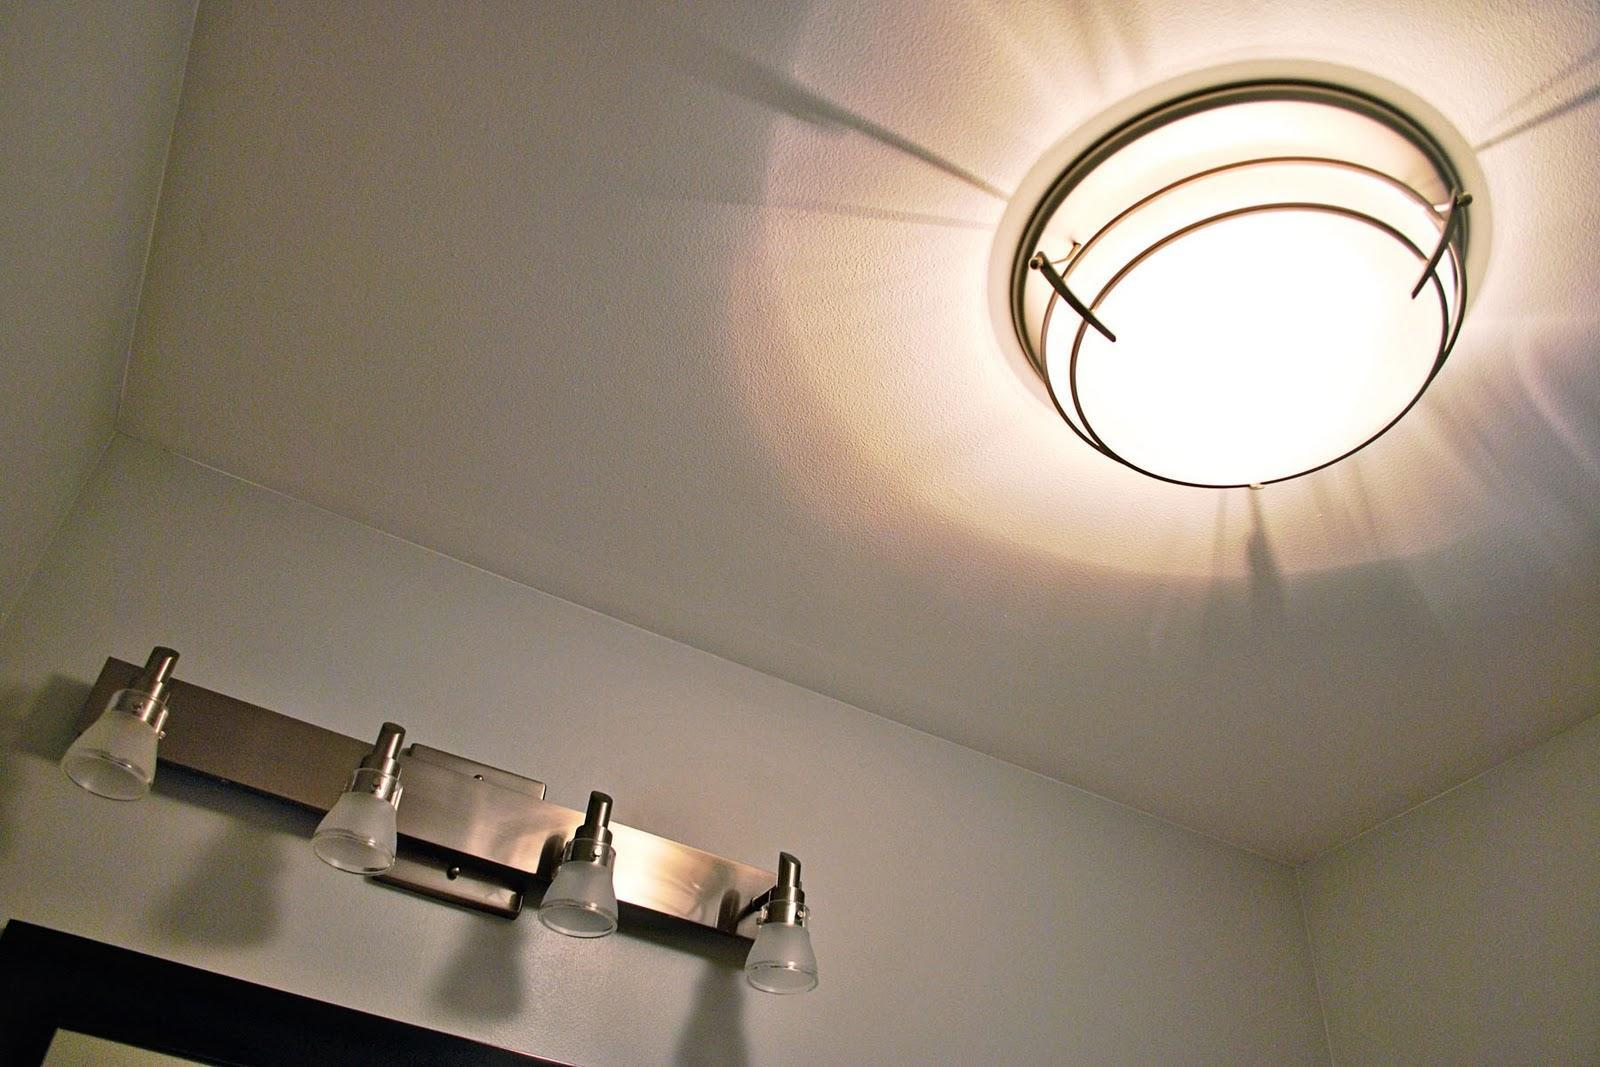 Best Bathroom Fan With Light The Bathroom Ceiling Lights Ideas 3203 Bathroom Ideas